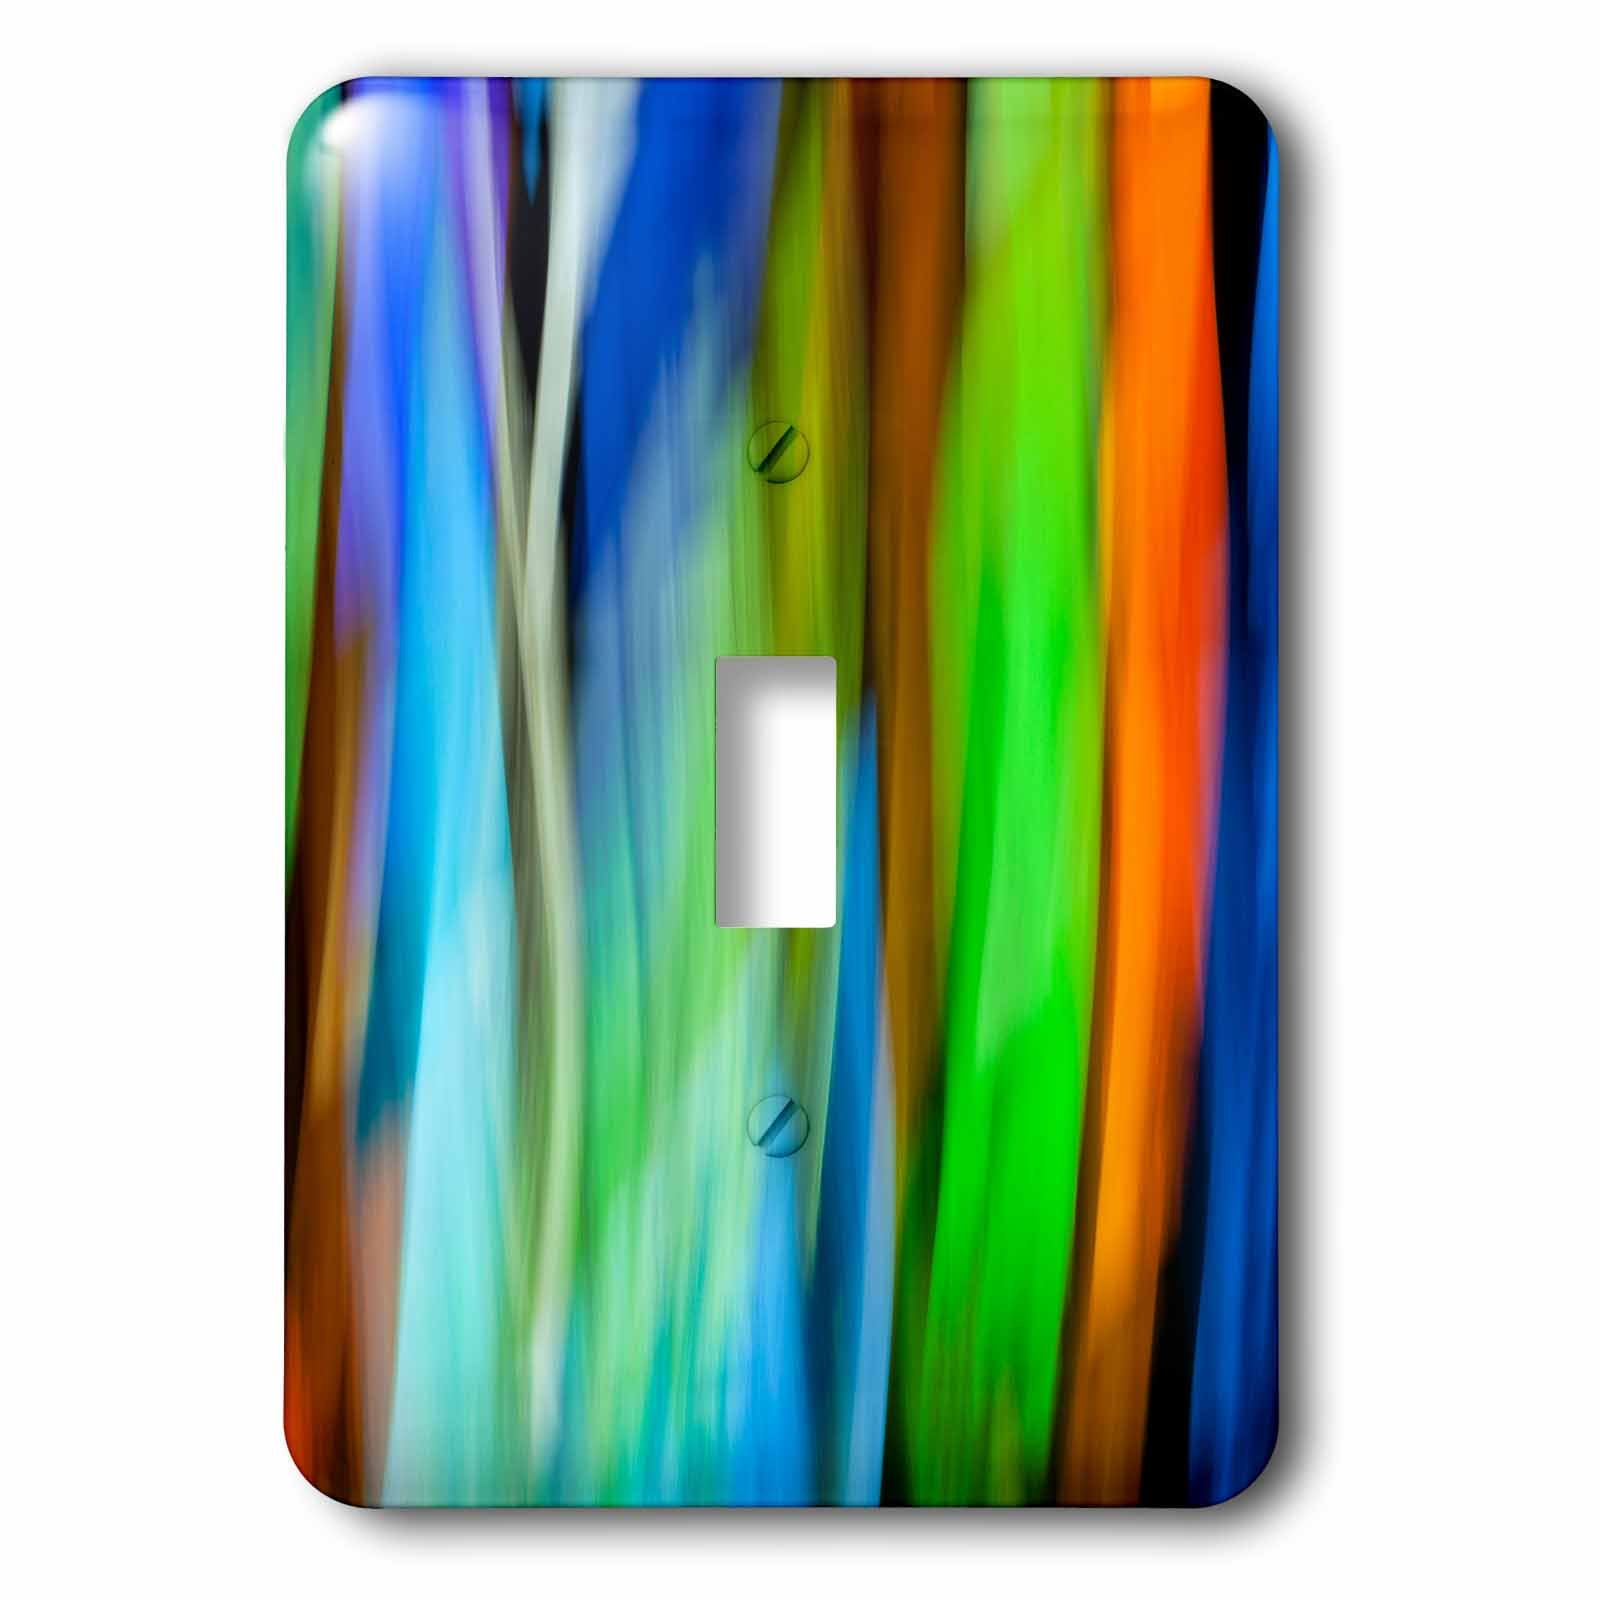 3dRose Danita Delimont - Abstracts - A motion blur of a stain glass window. - Light Switch Covers - single toggle switch (lsp_276400_1)